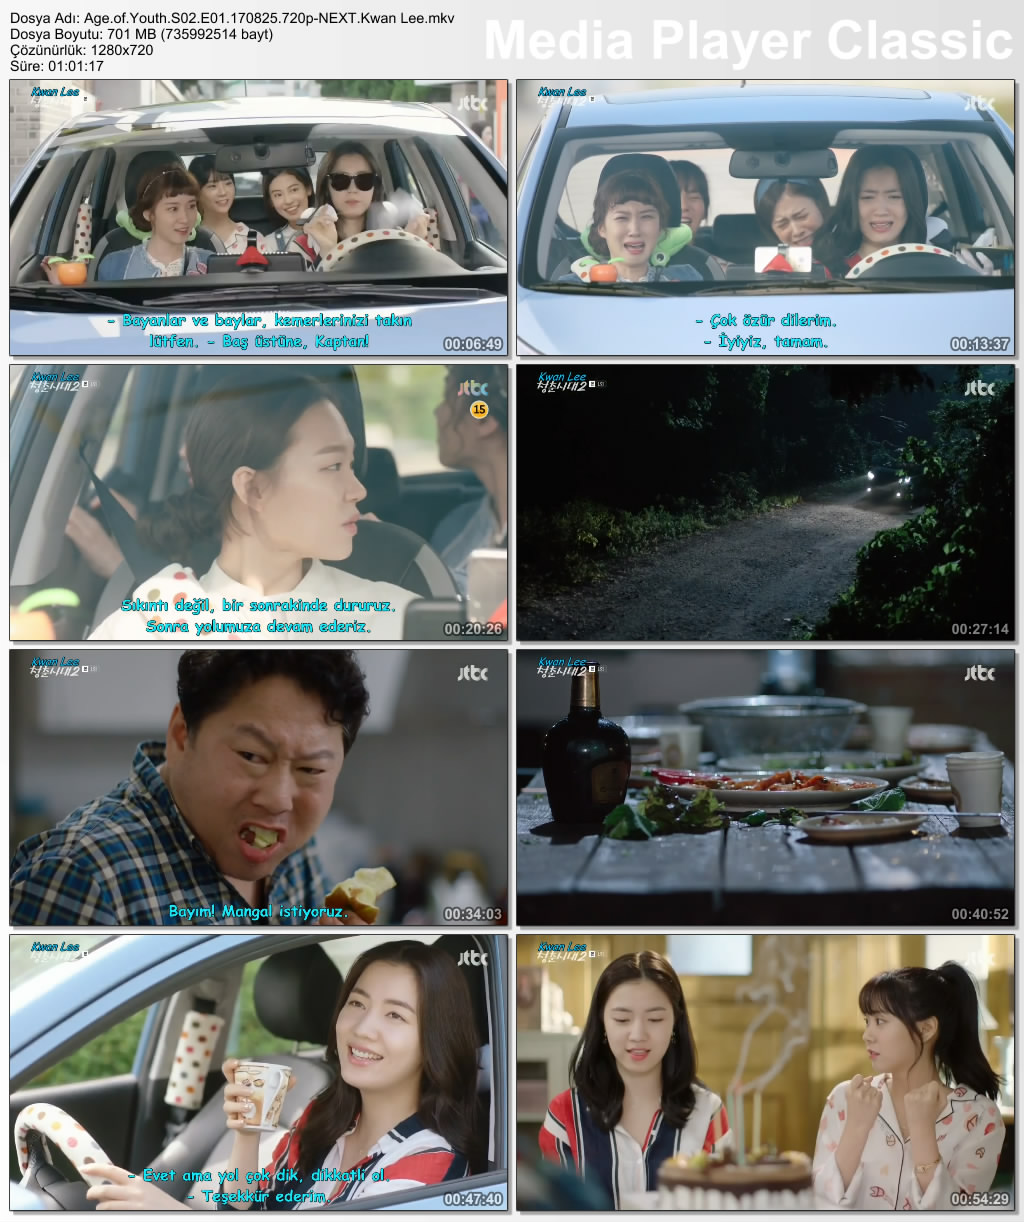 [Resim: Age.of.Youth.S02.E01.170825.720p-NEXT.Kw....49%5D.jpg]